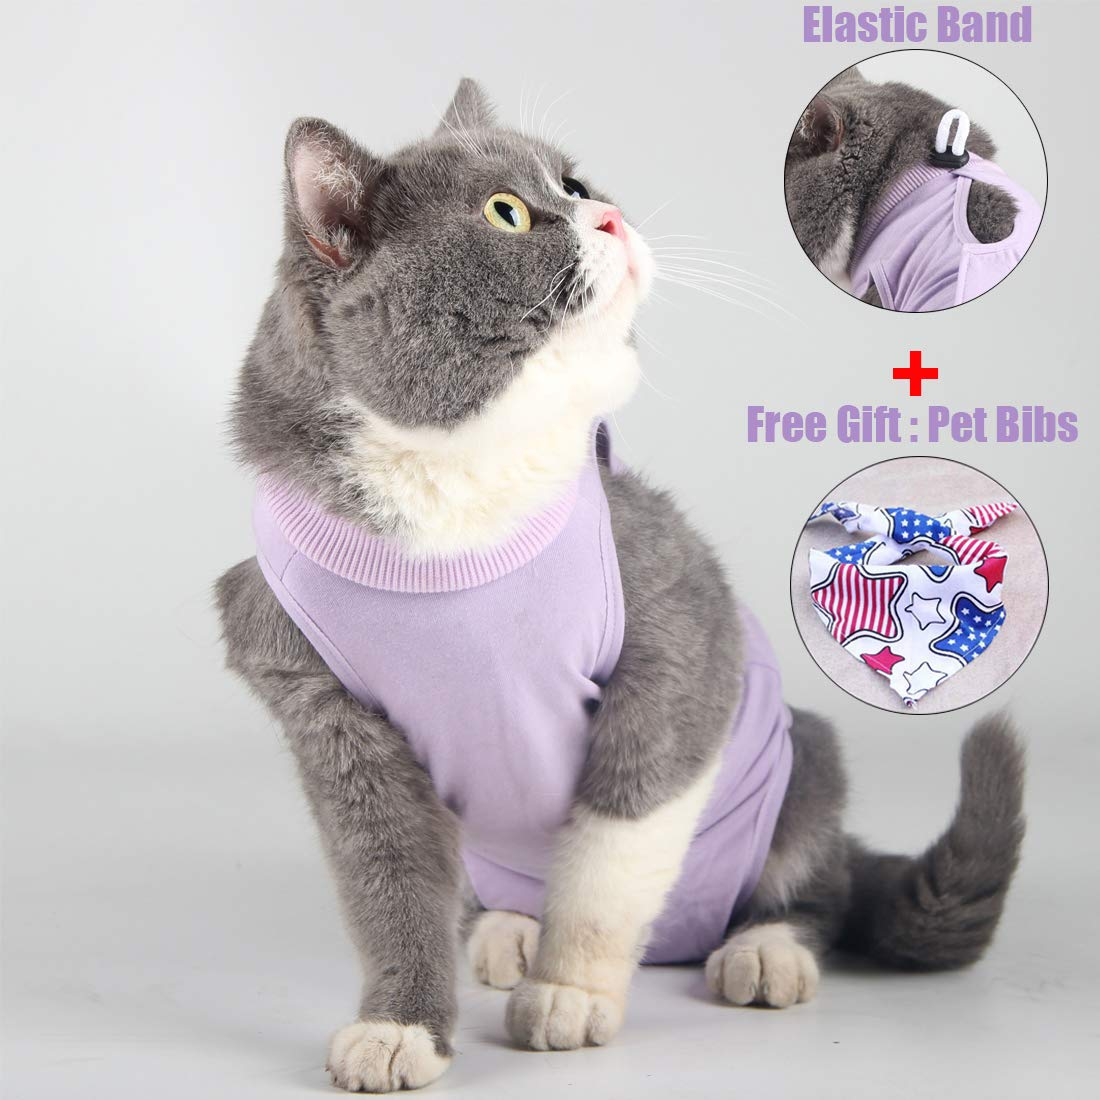 Cat Surgical Recovery Suit Abdominal Wounds or Skin Diseases, E-Collar Alternative,After Surgery Wear, Professional Home Indoor Pets Clothing by Wooruy